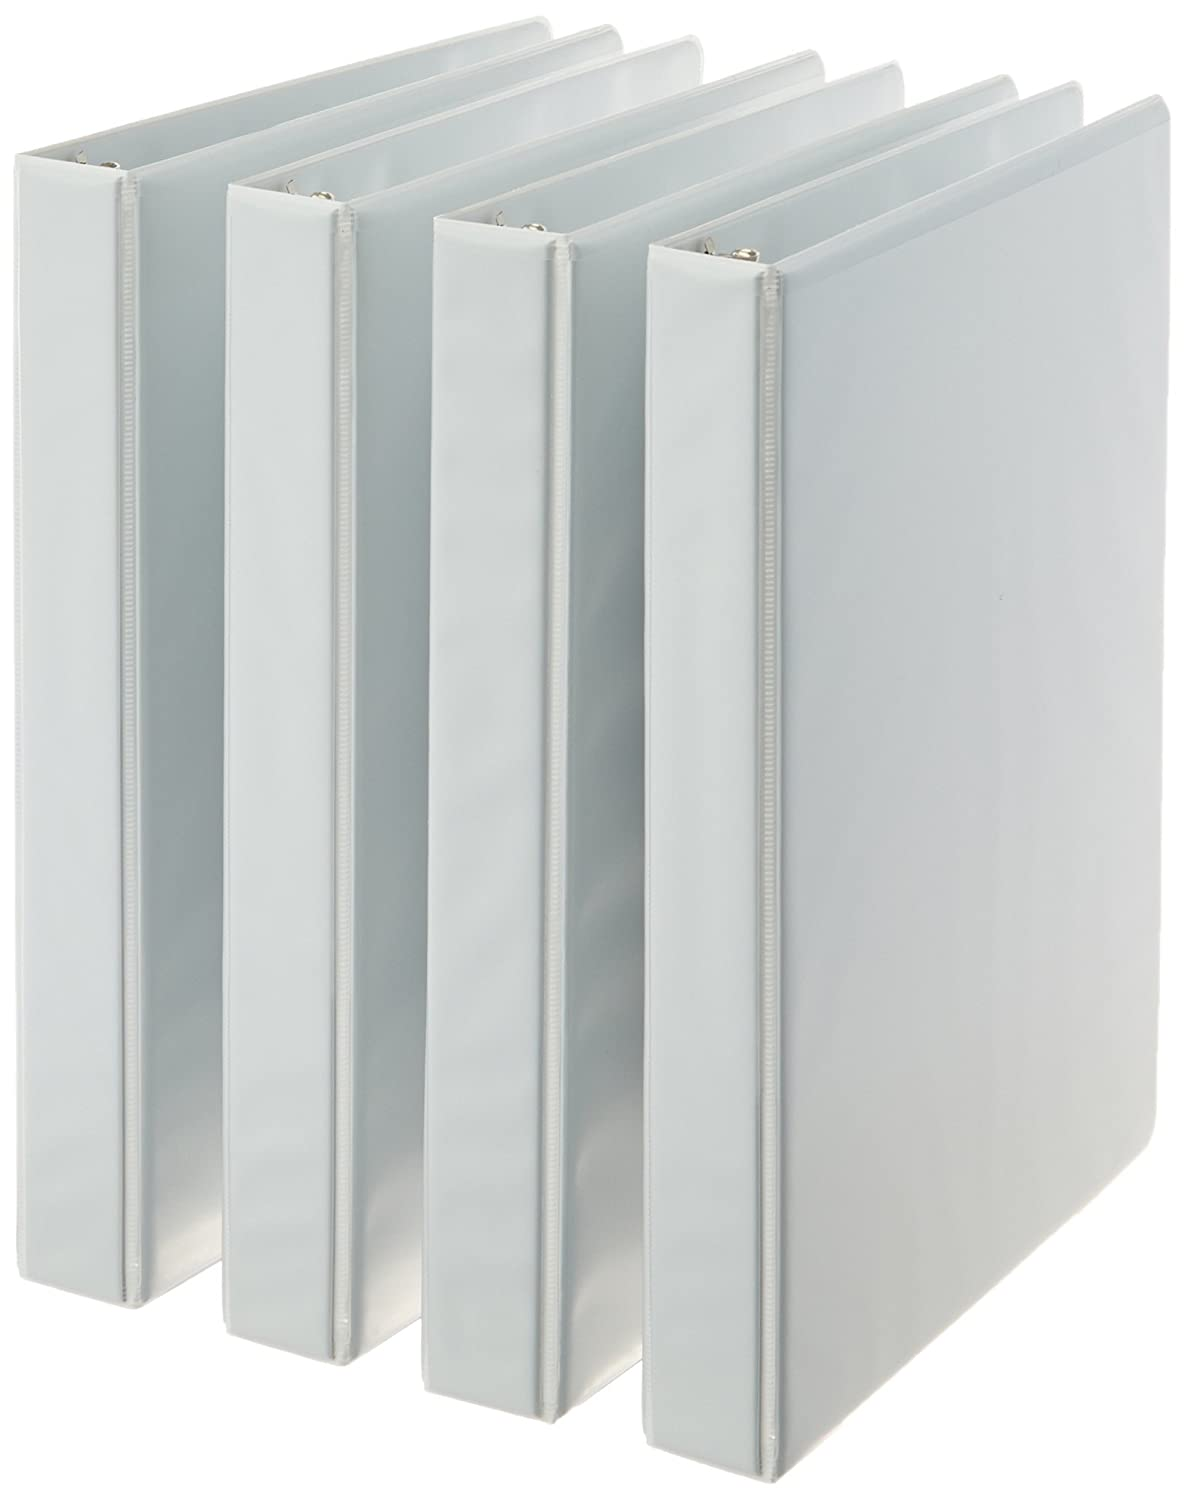 AmazonBasics 3-Ring Binder, 2 Inch - 4-Pack (White) B0050LDFNQ-WT